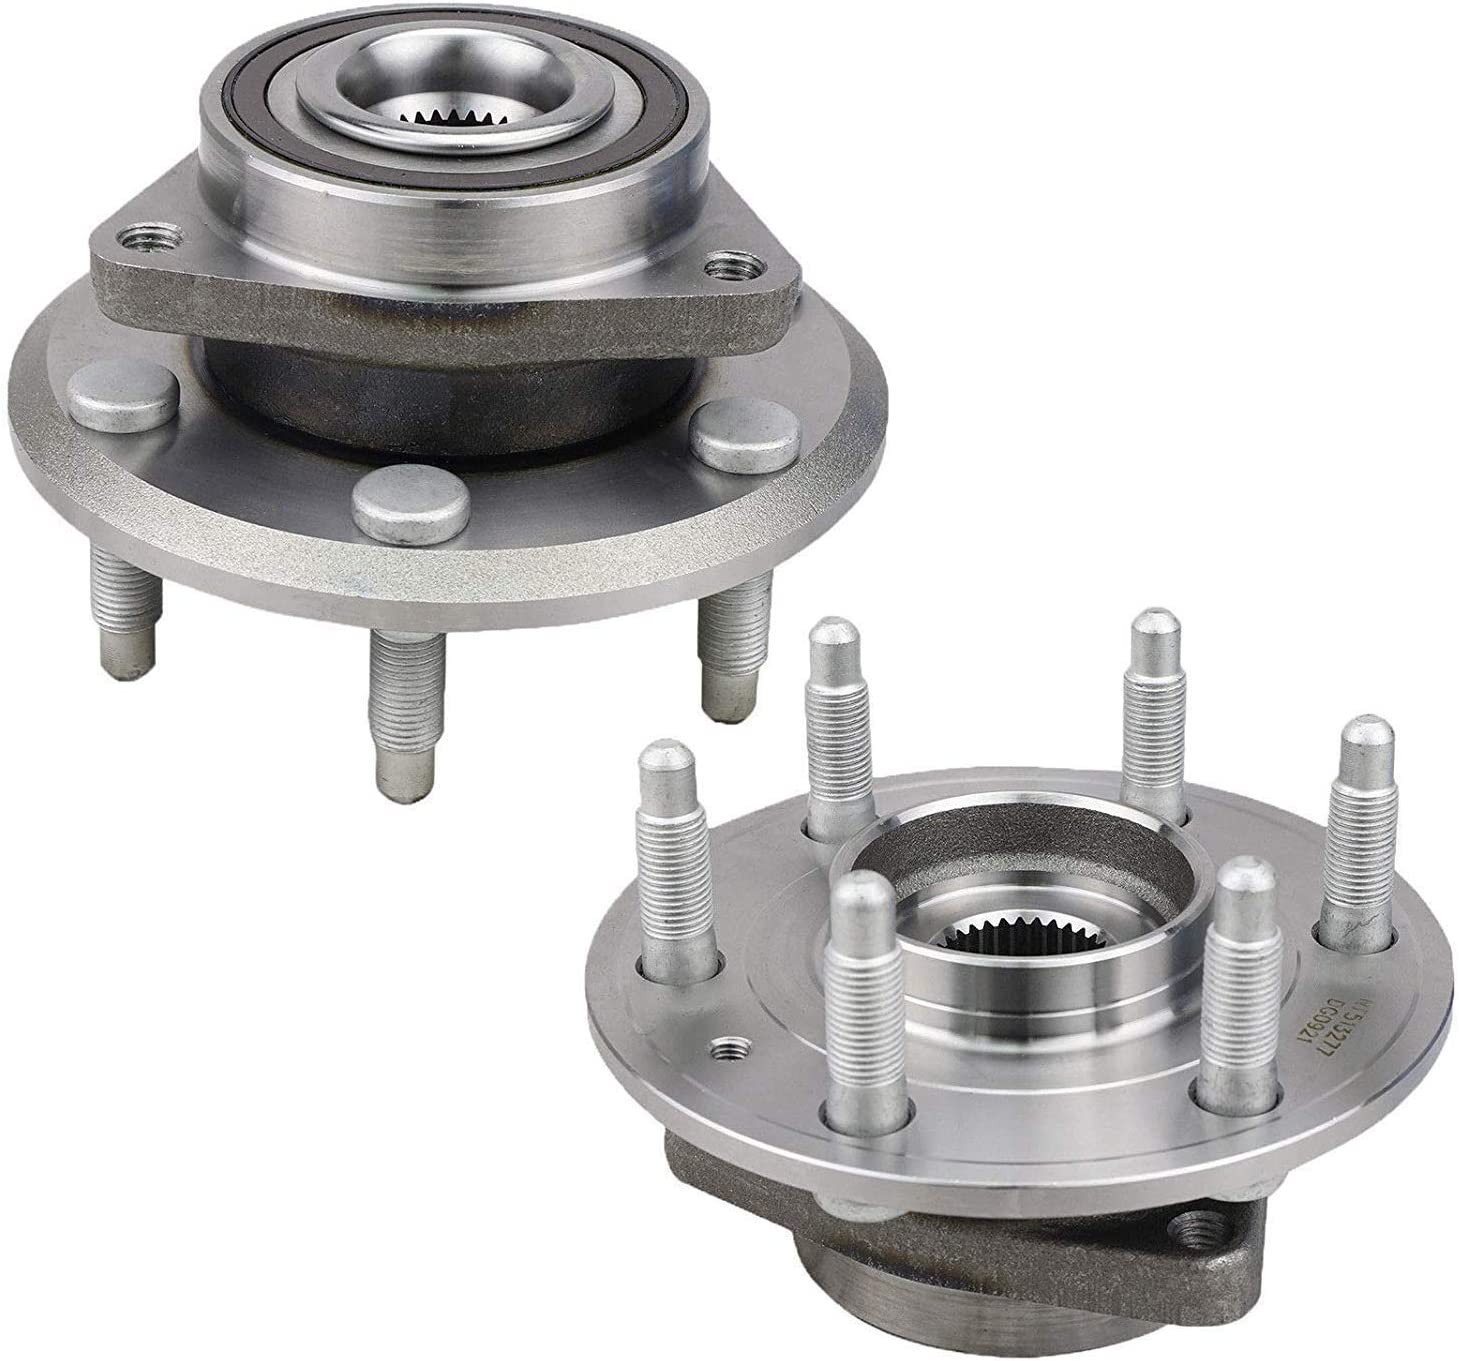 Bodeman 2 Pair Front Wheel Hub and Bearing Assembly for 2007-2016 GMC Acadia// 2008-2017 Buick Enclave // 2007-2010 Saturn Outlook // 2009-2017 Chevy Traverse